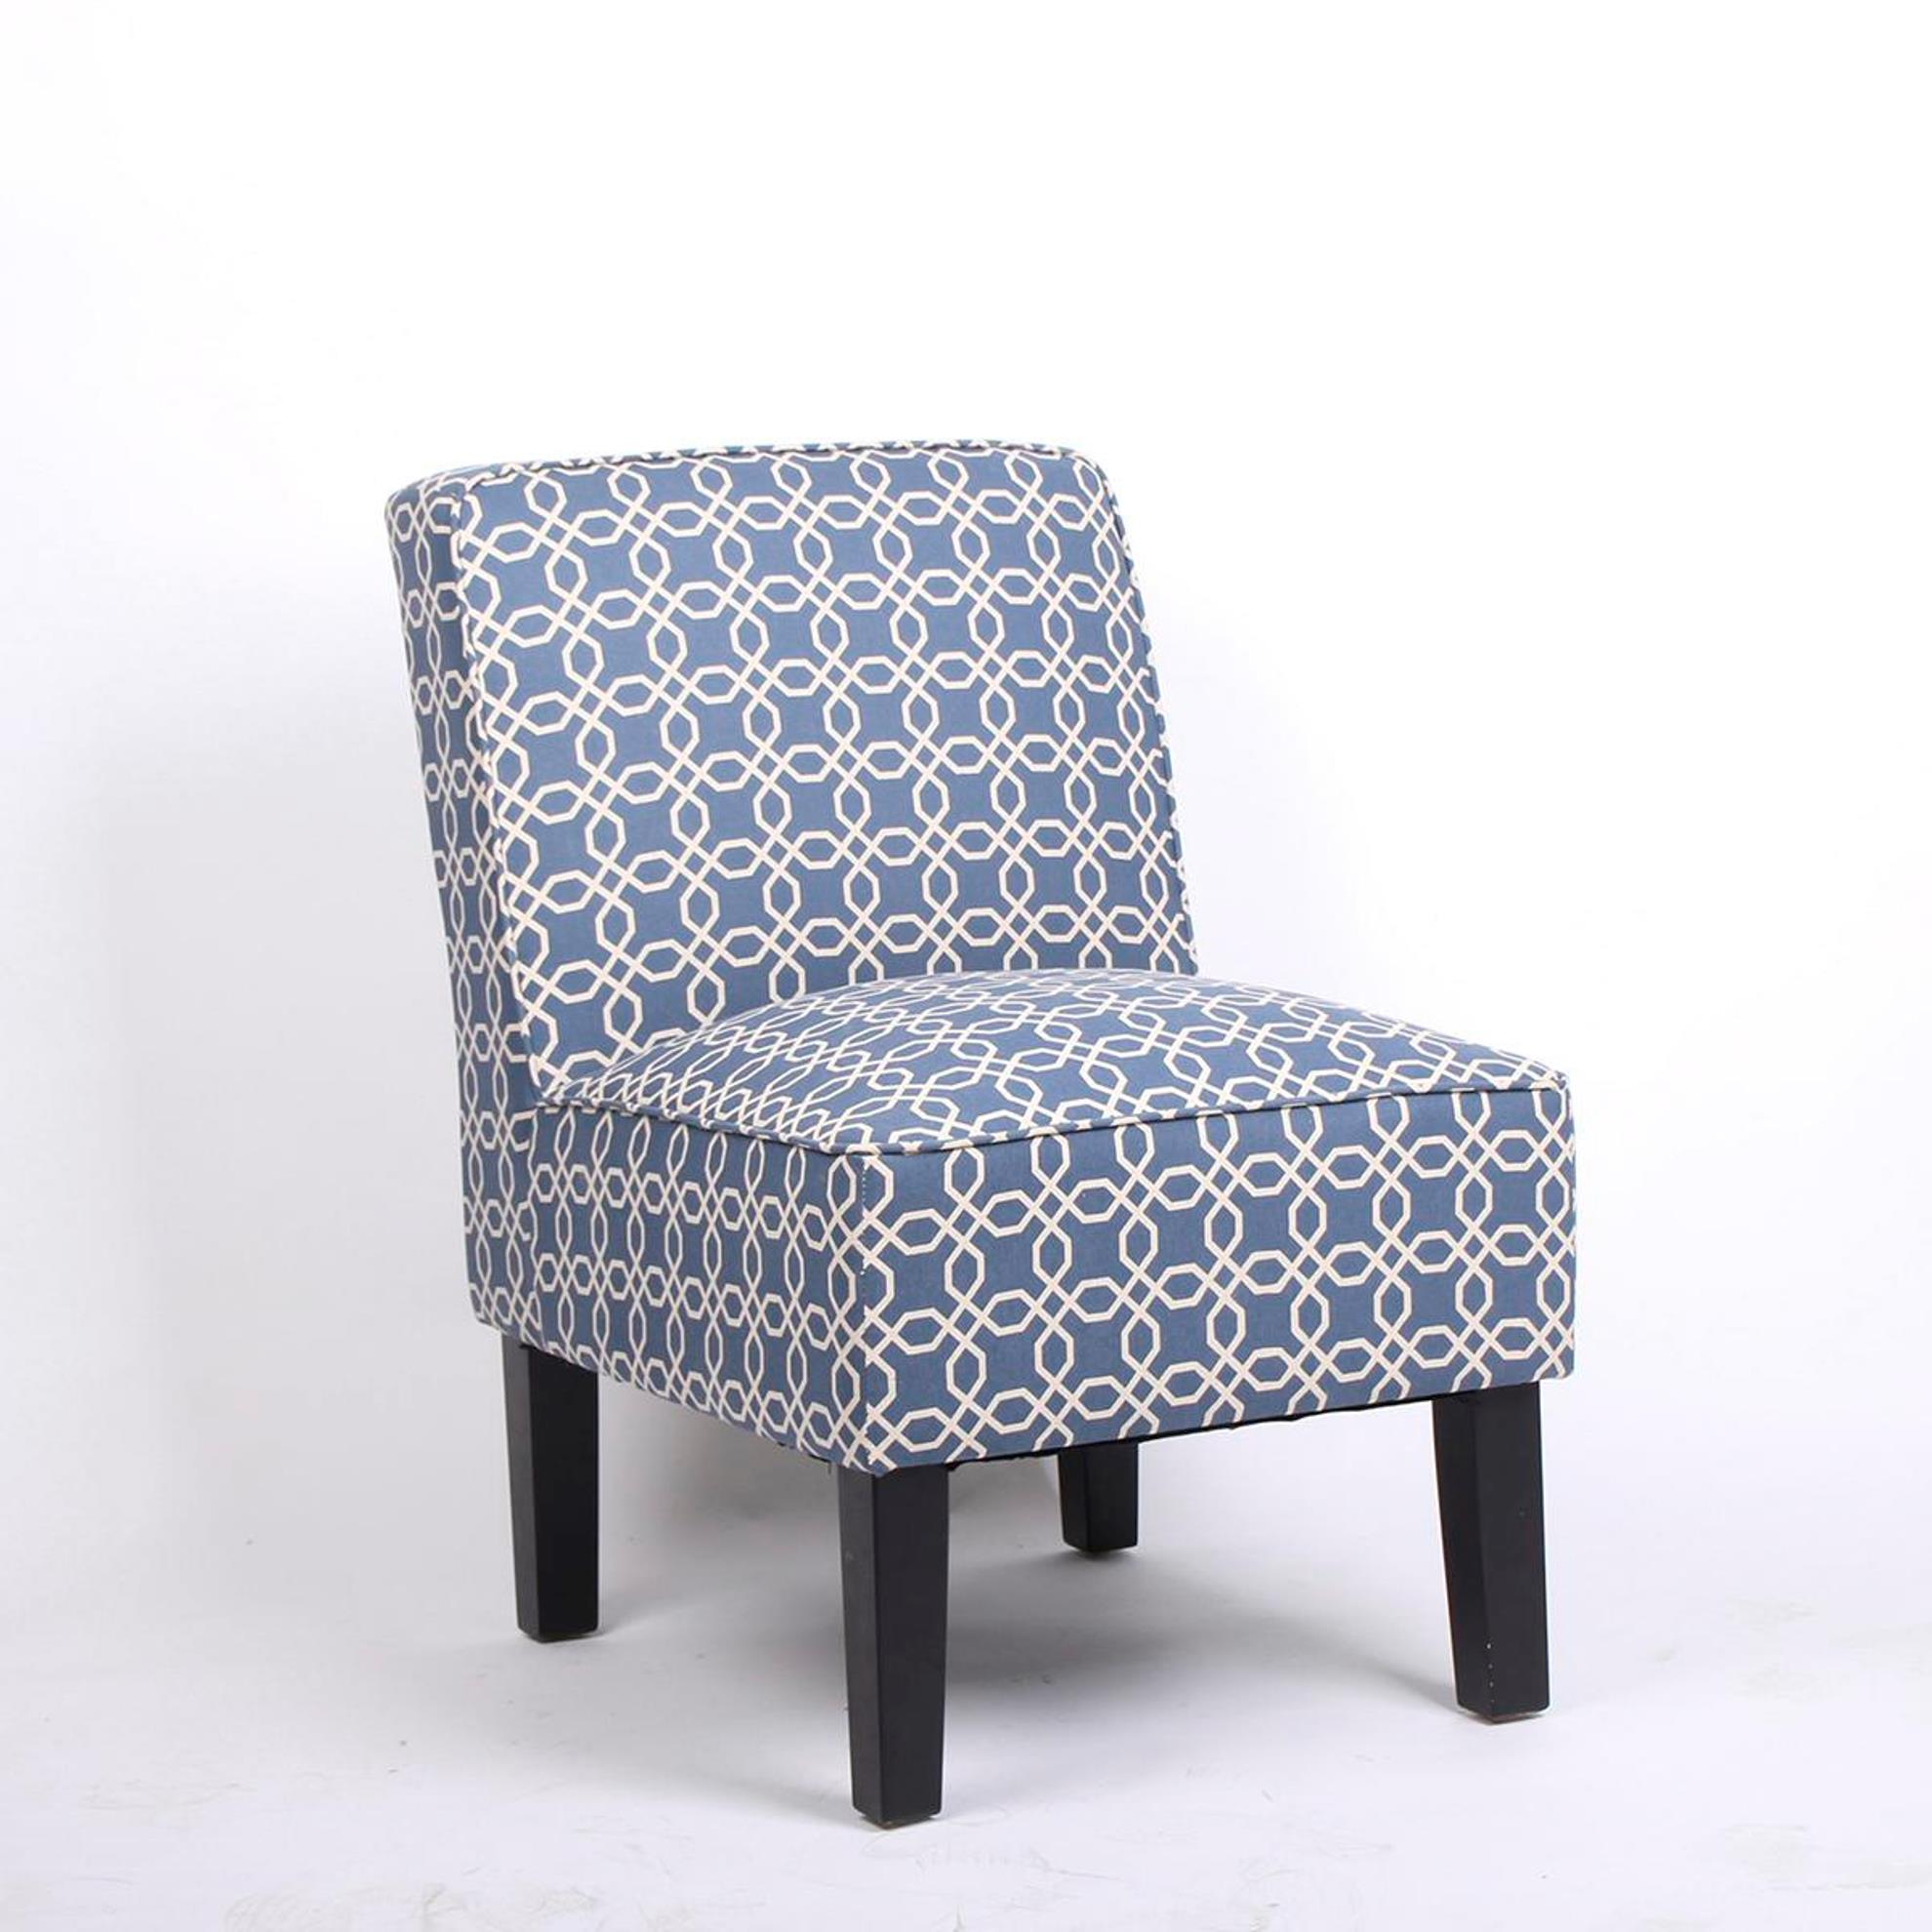 Patterned Chairs Patterned Slipper Chair